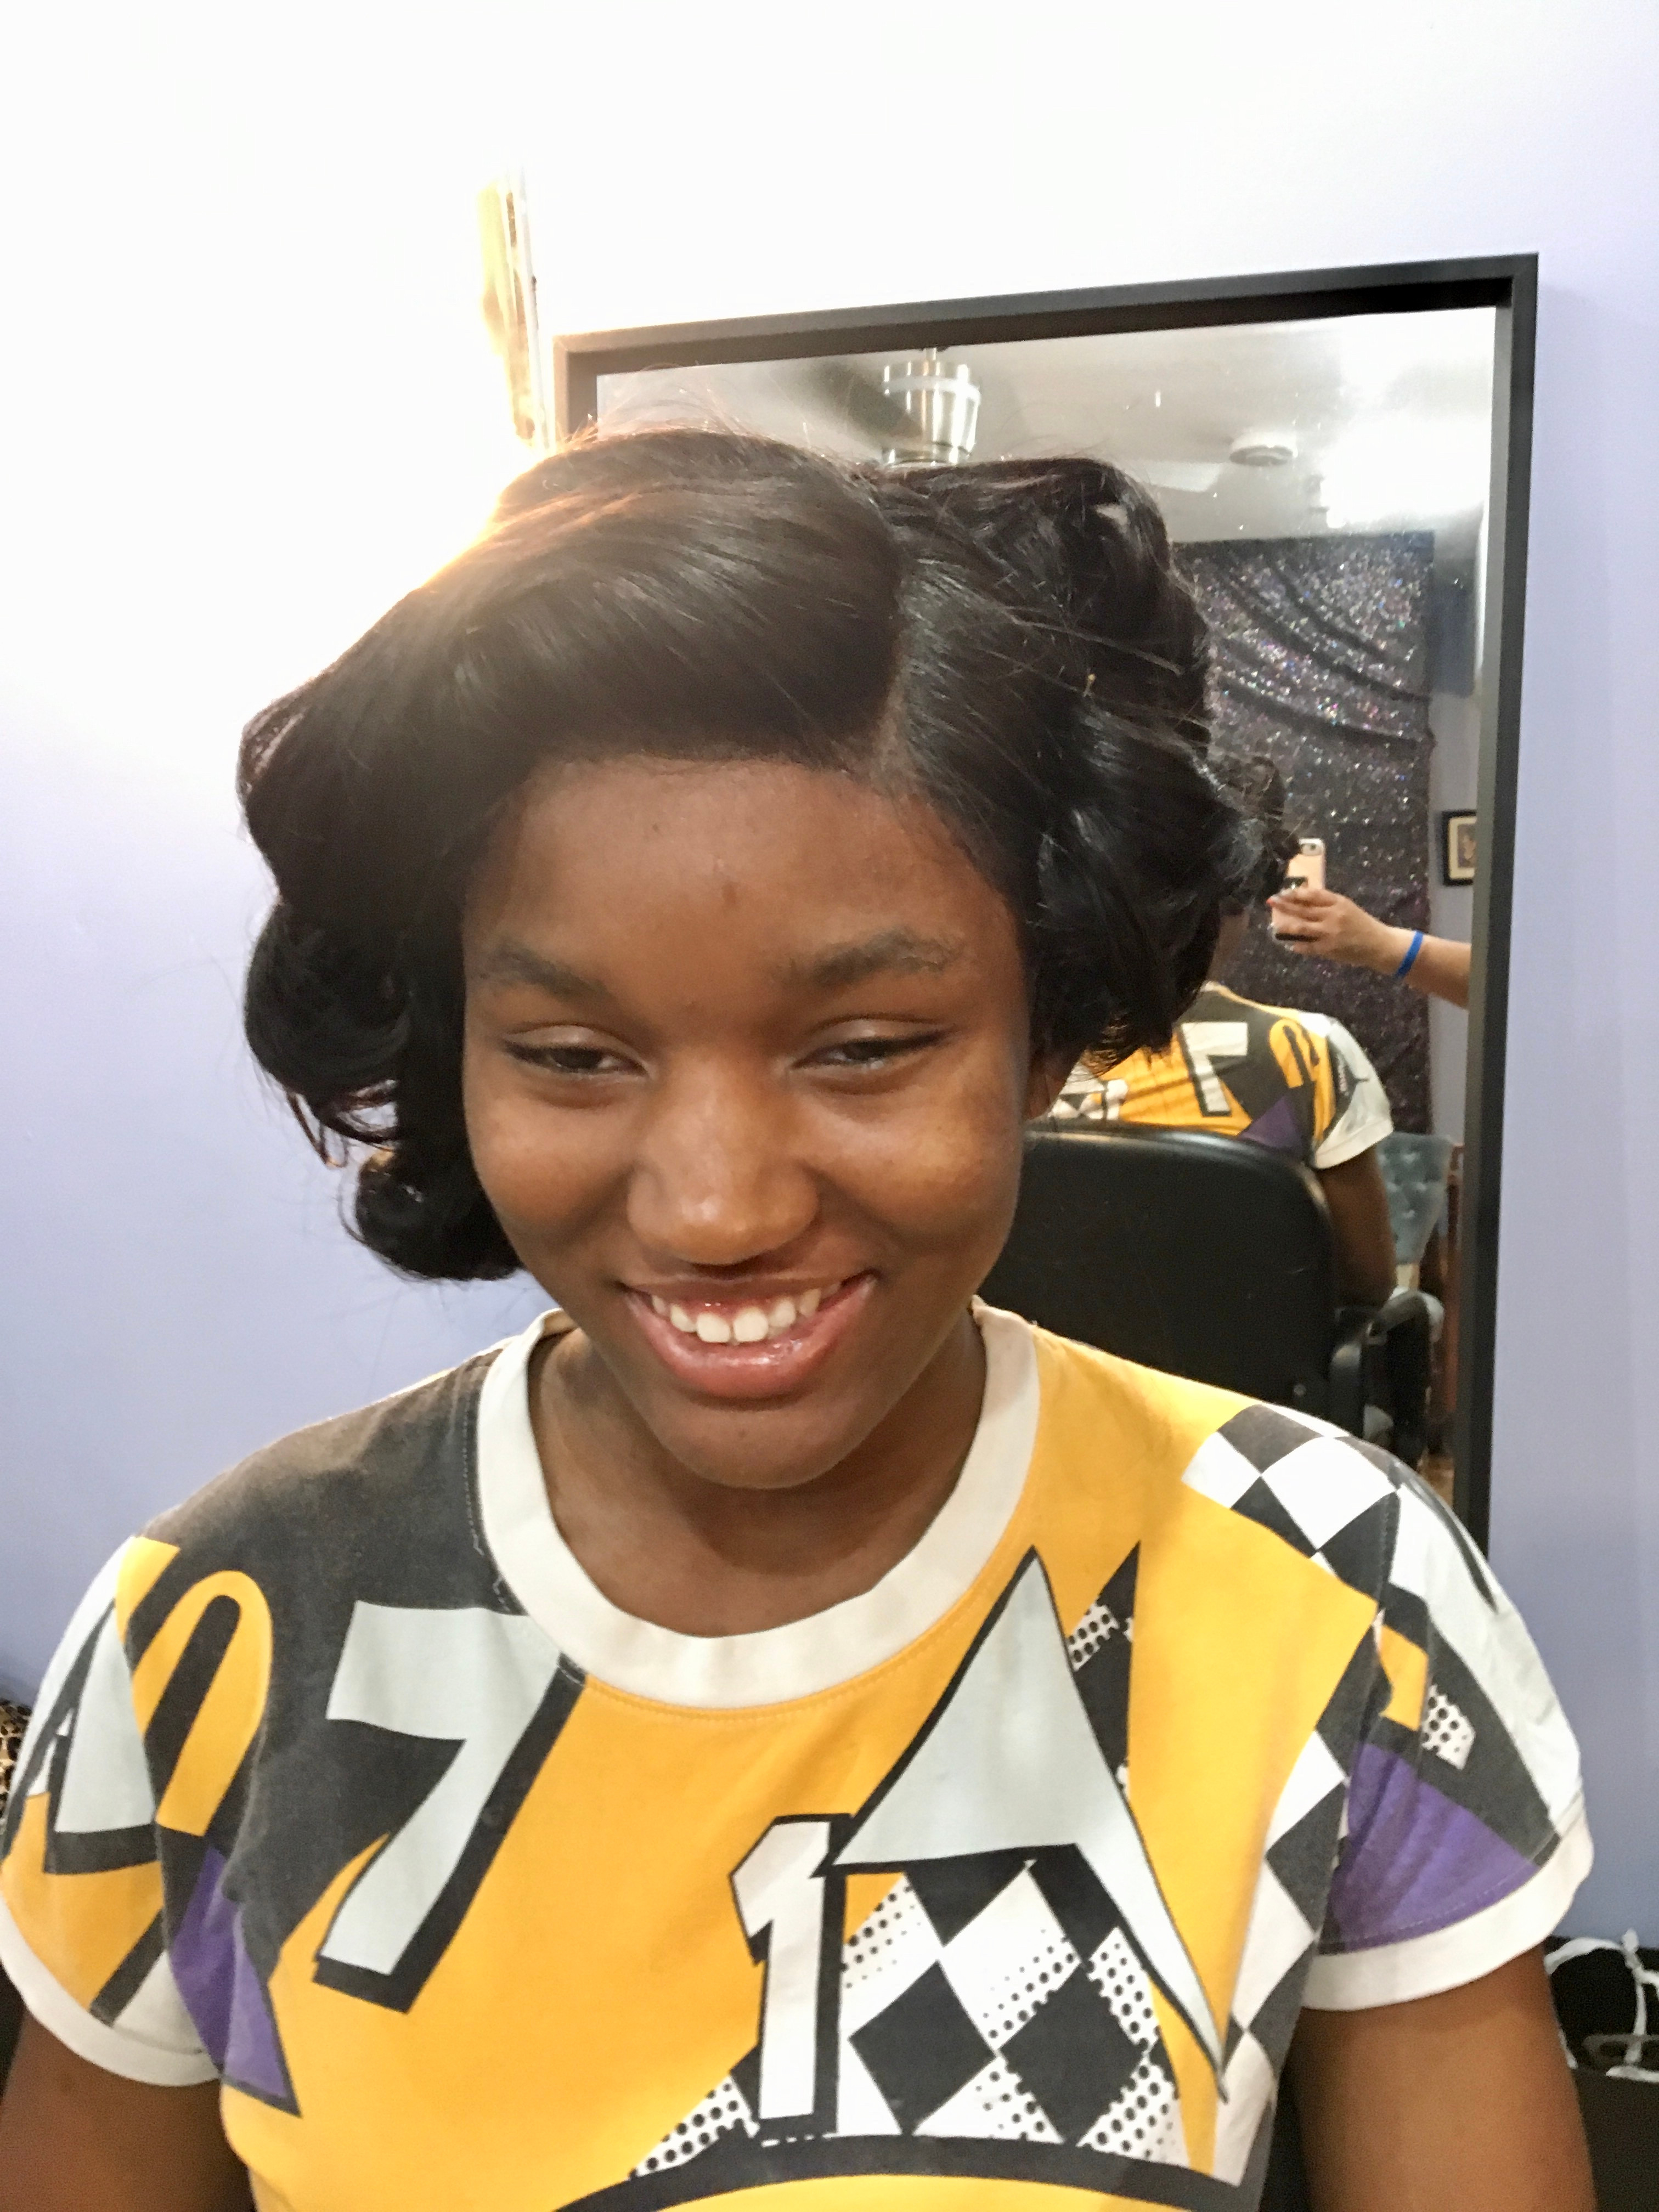 Full Sew-In with Lace Frontal